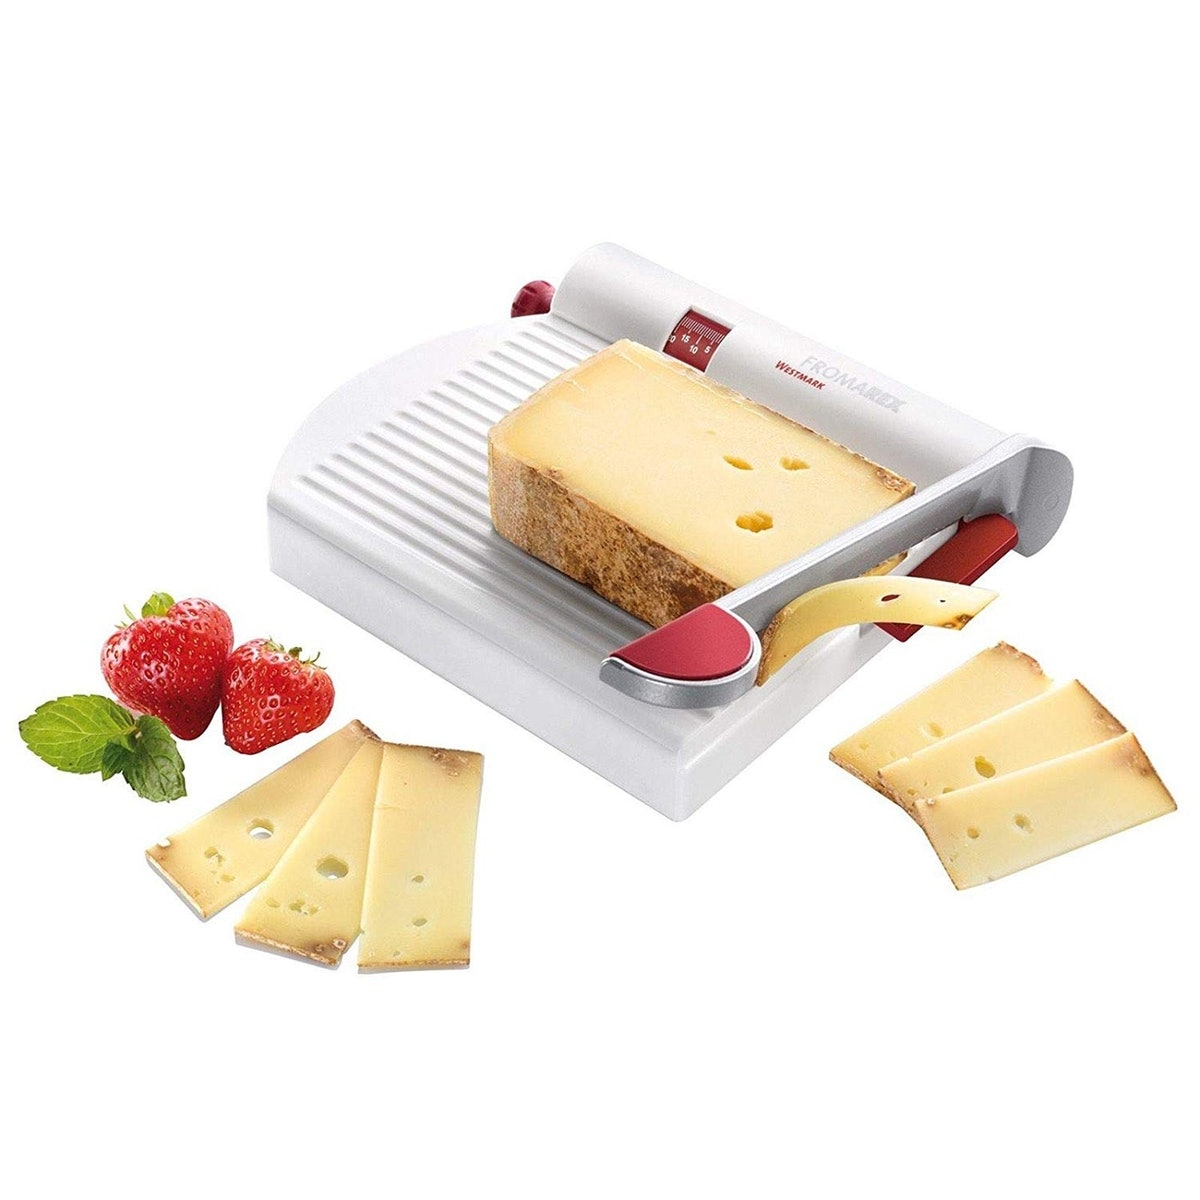 Westmark Stainless Steel Cheese and Food Slicer